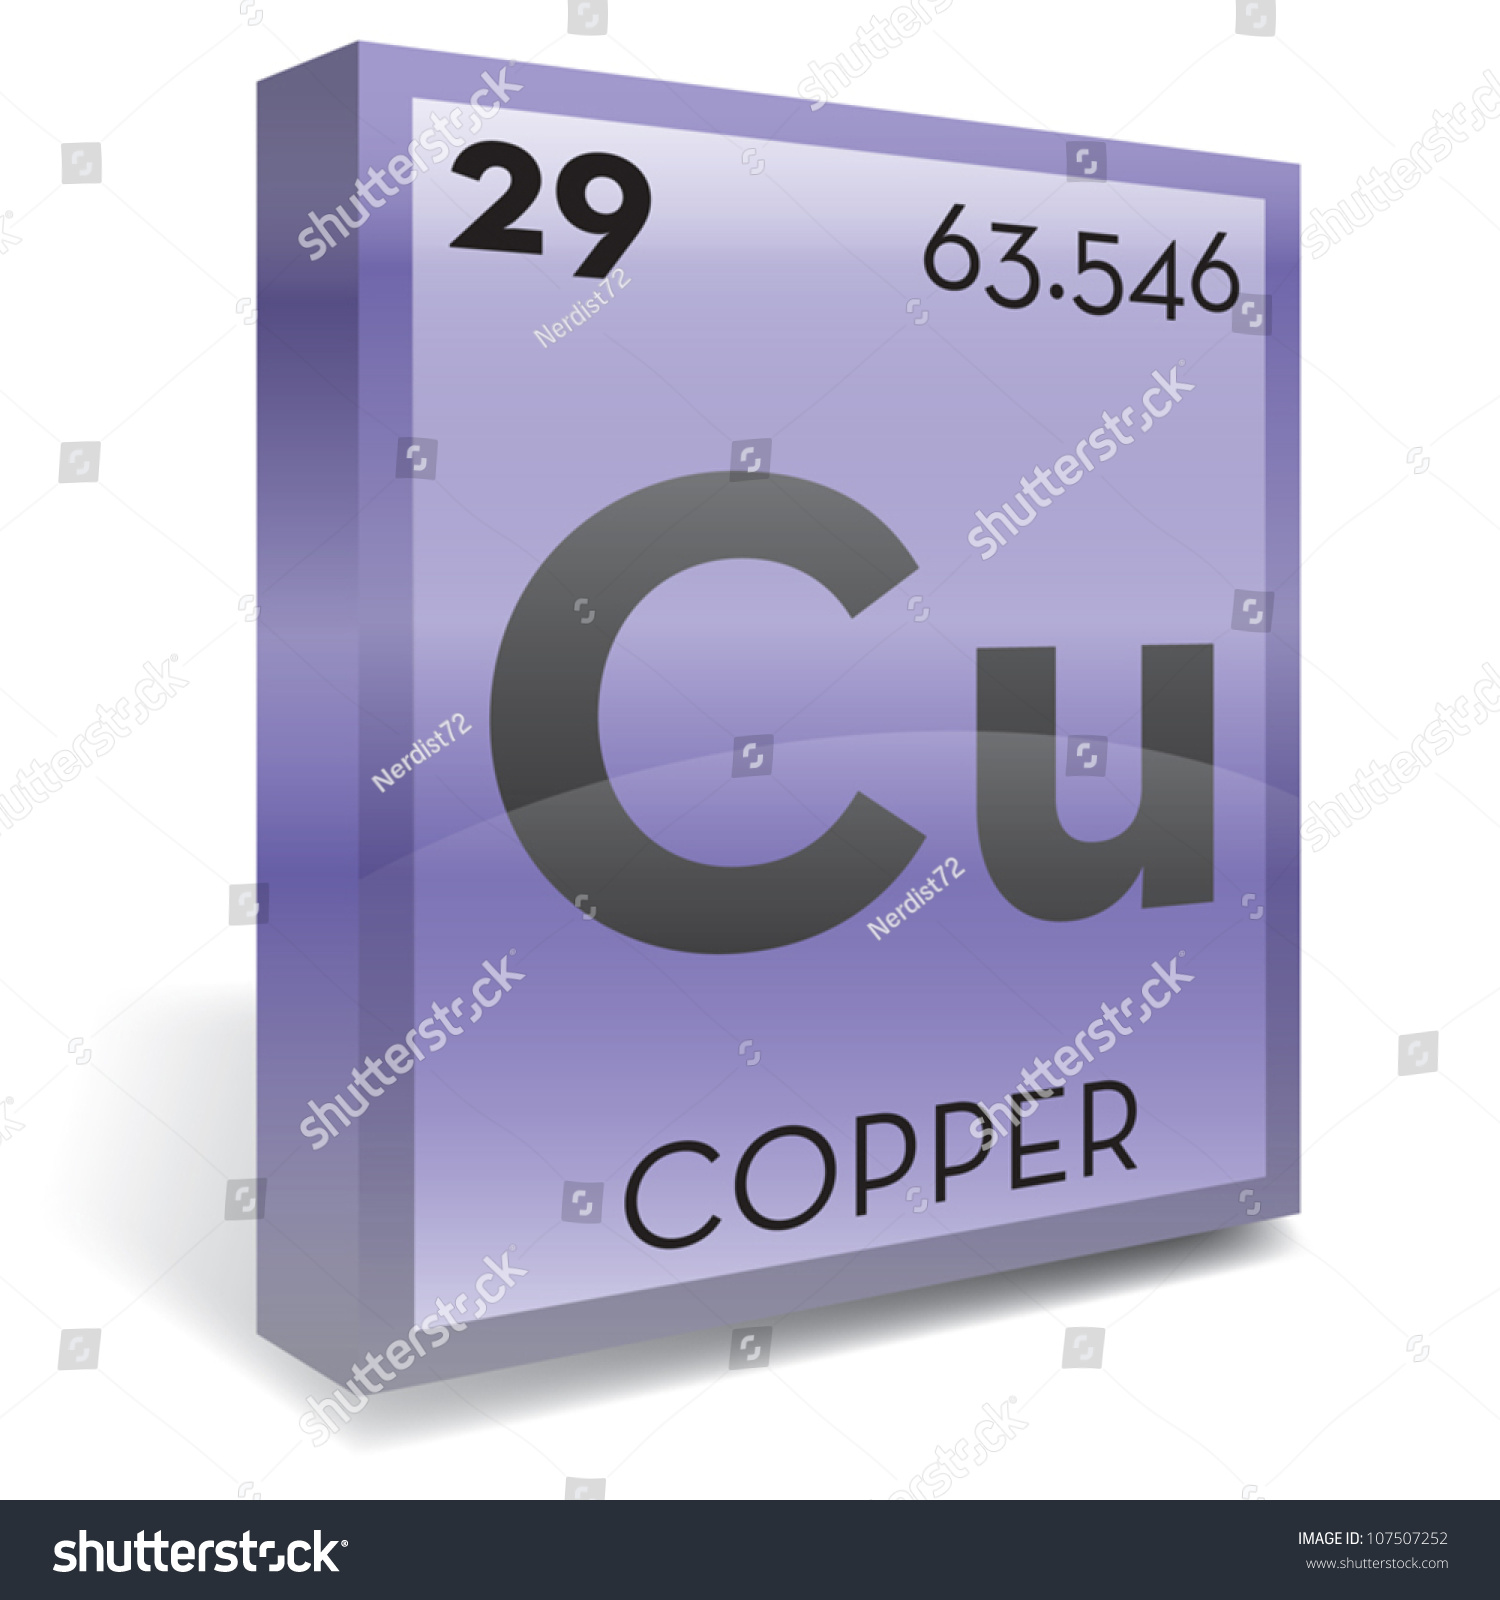 Copper element periodic table stock vector 107507252 shutterstock copper element periodic table gamestrikefo Choice Image